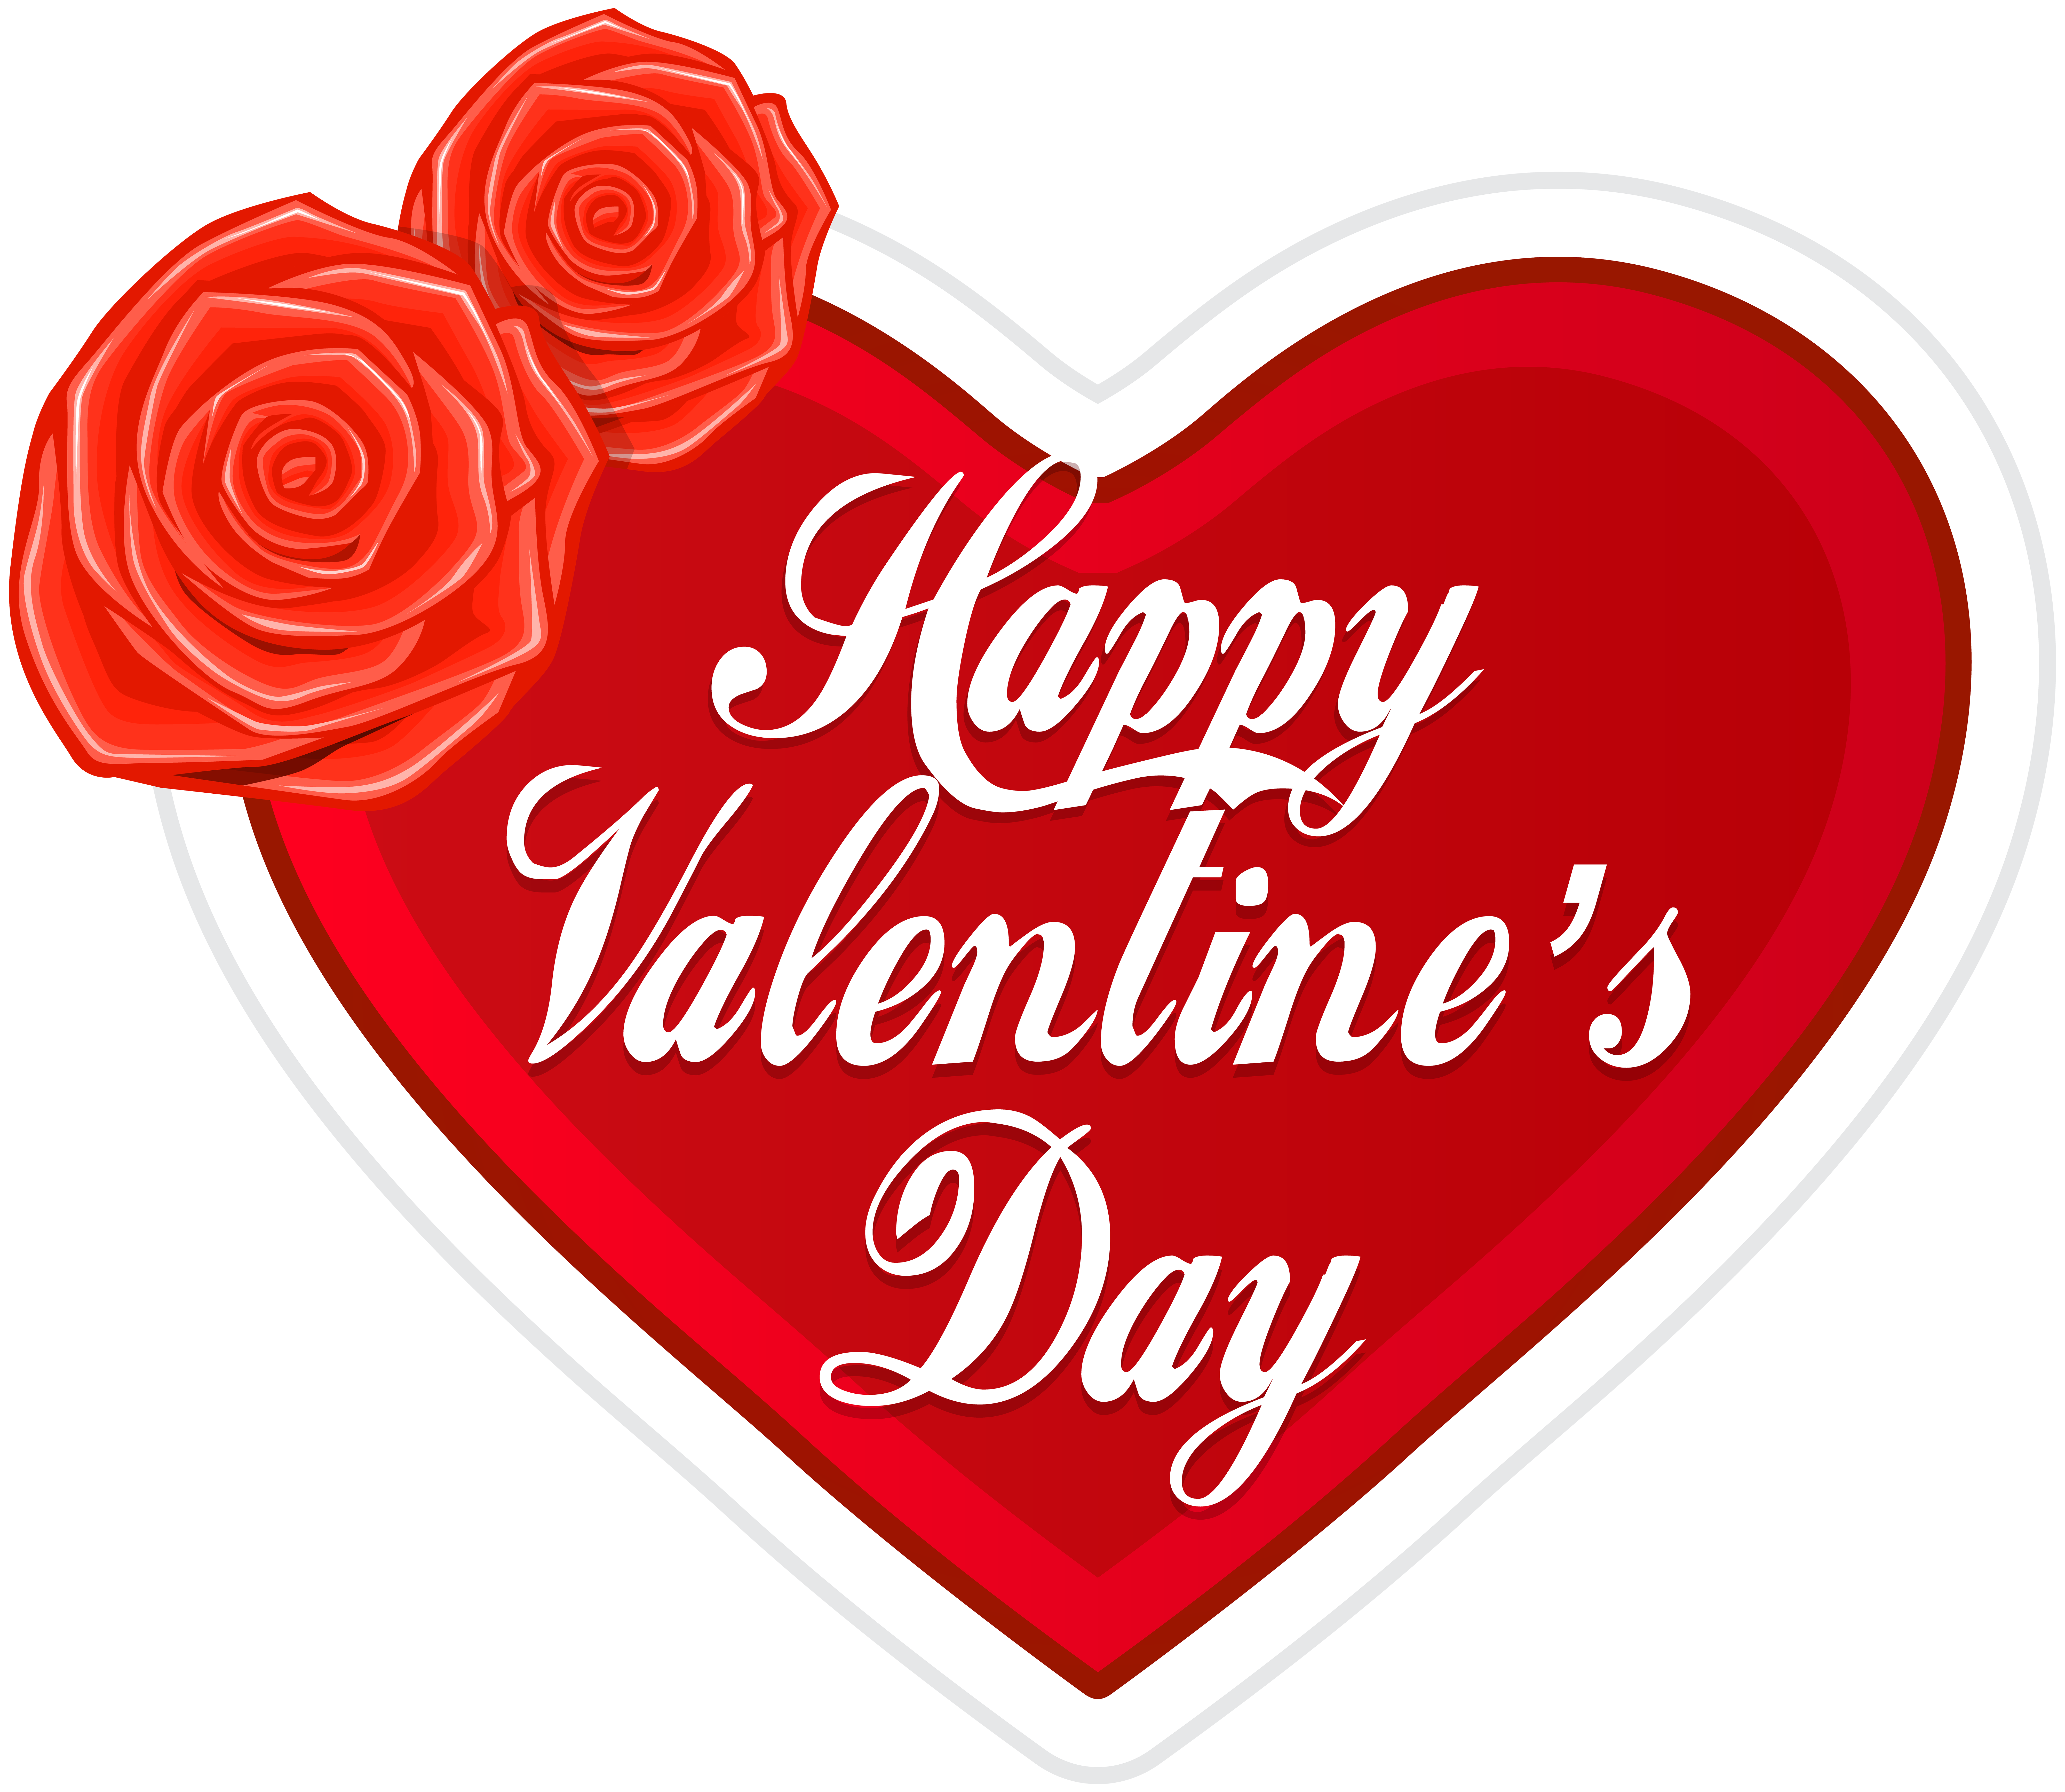 Valentines day hearts png. Happy valentine s heart